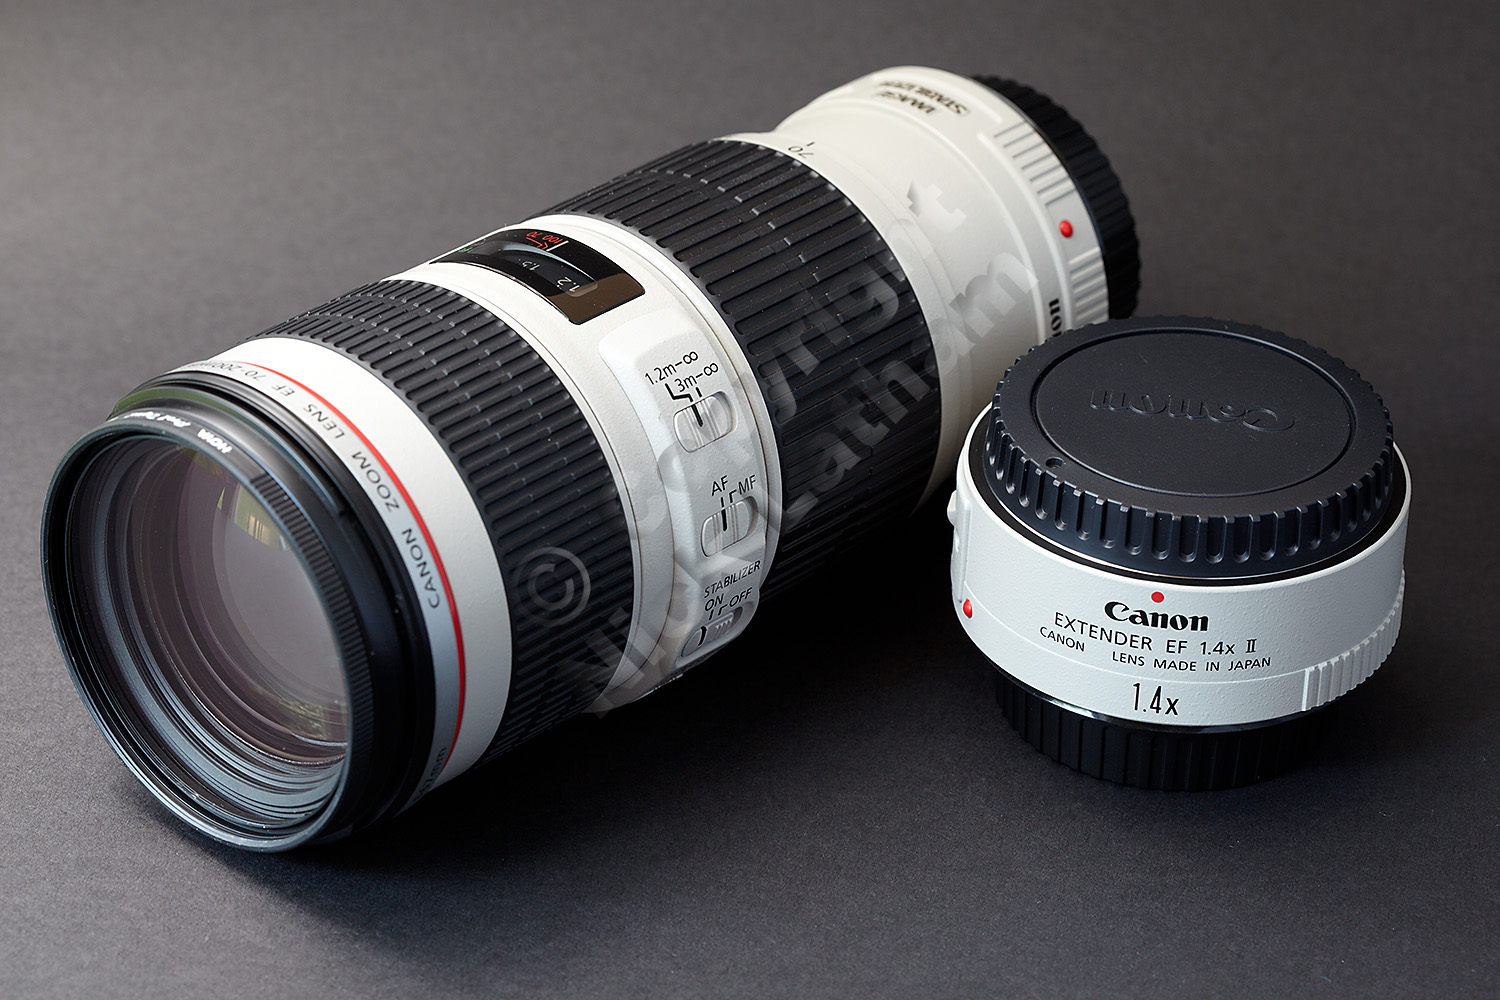 Canon 70-200mm f4 L IS lens and 1.4x II Extender